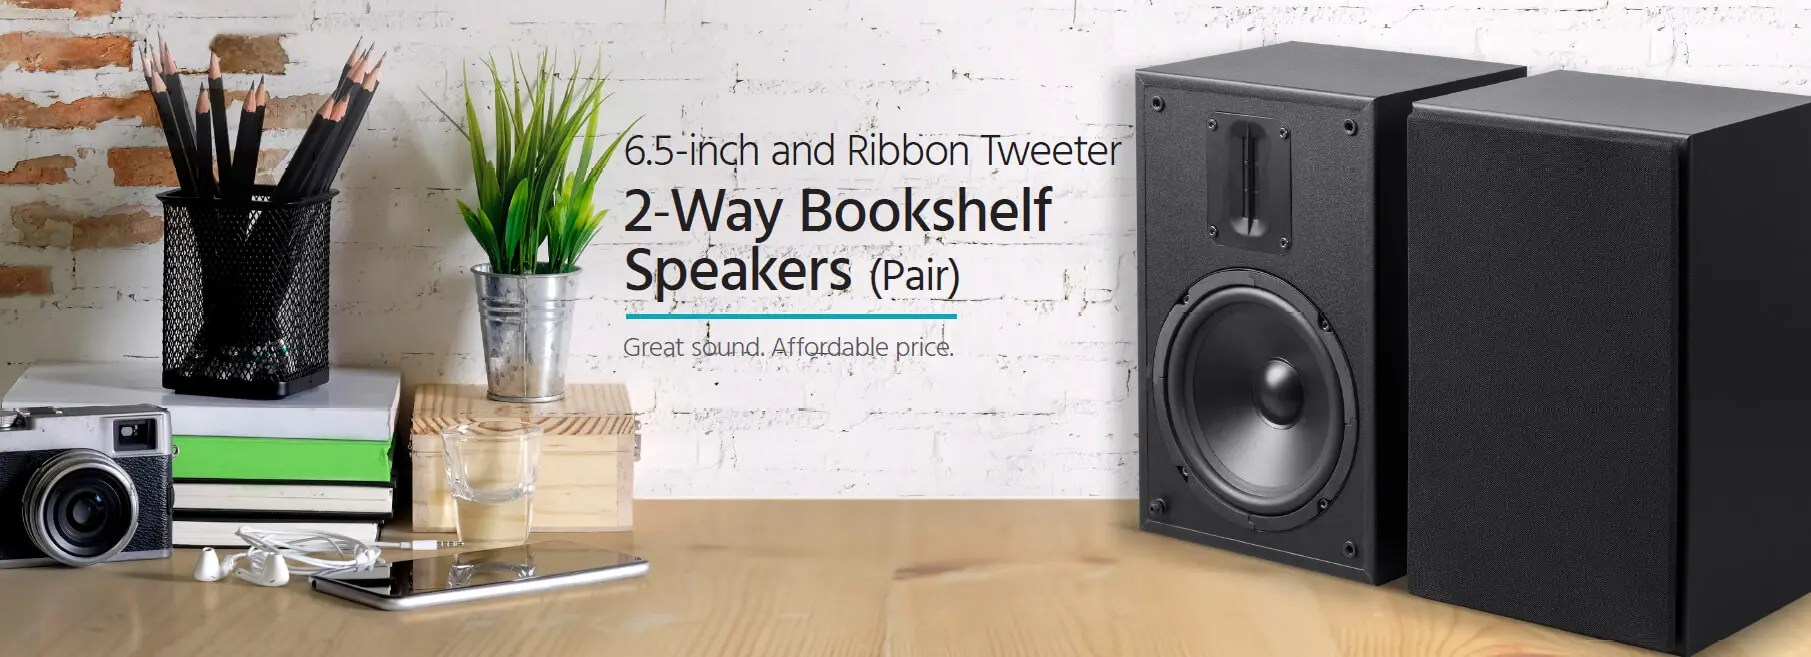 mp-65rt 6.5in and ribbon tweeter 2-way bookshelf speakers (pair